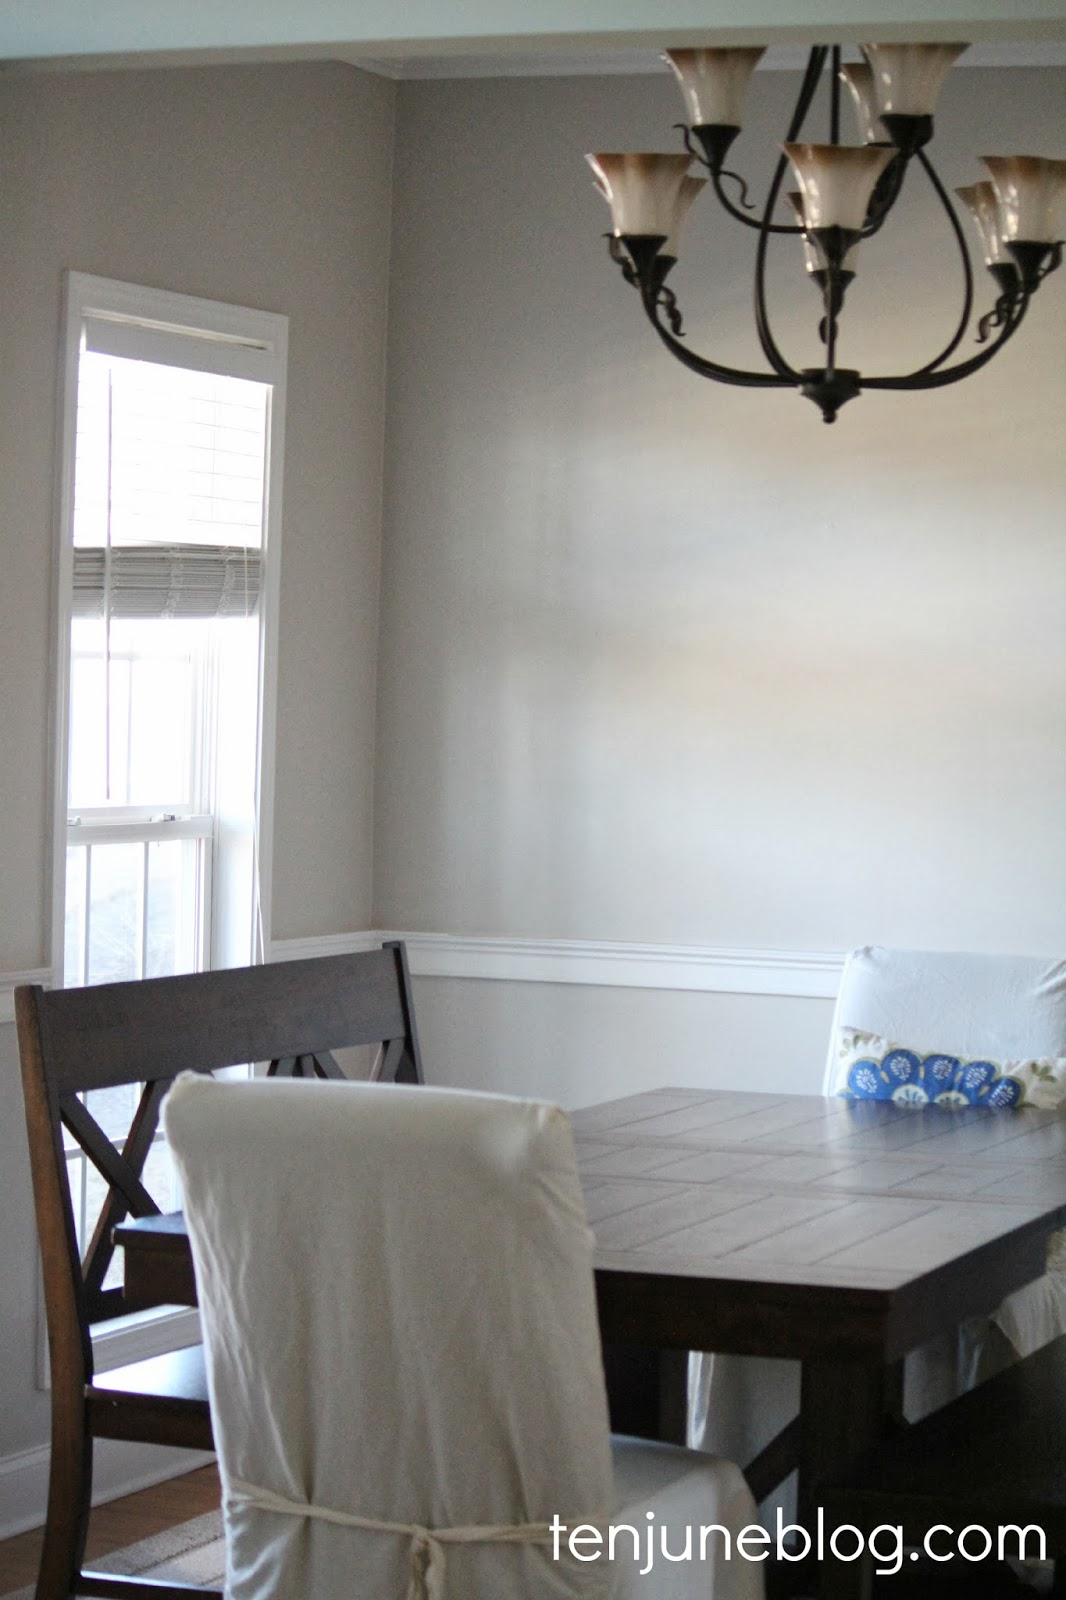 ten june dining room paint makeover sherwin williams agreeable gray the best part is that slowly but surely i m starting to love this room with the paint makeover and the addition of our new benches it s starting to feel